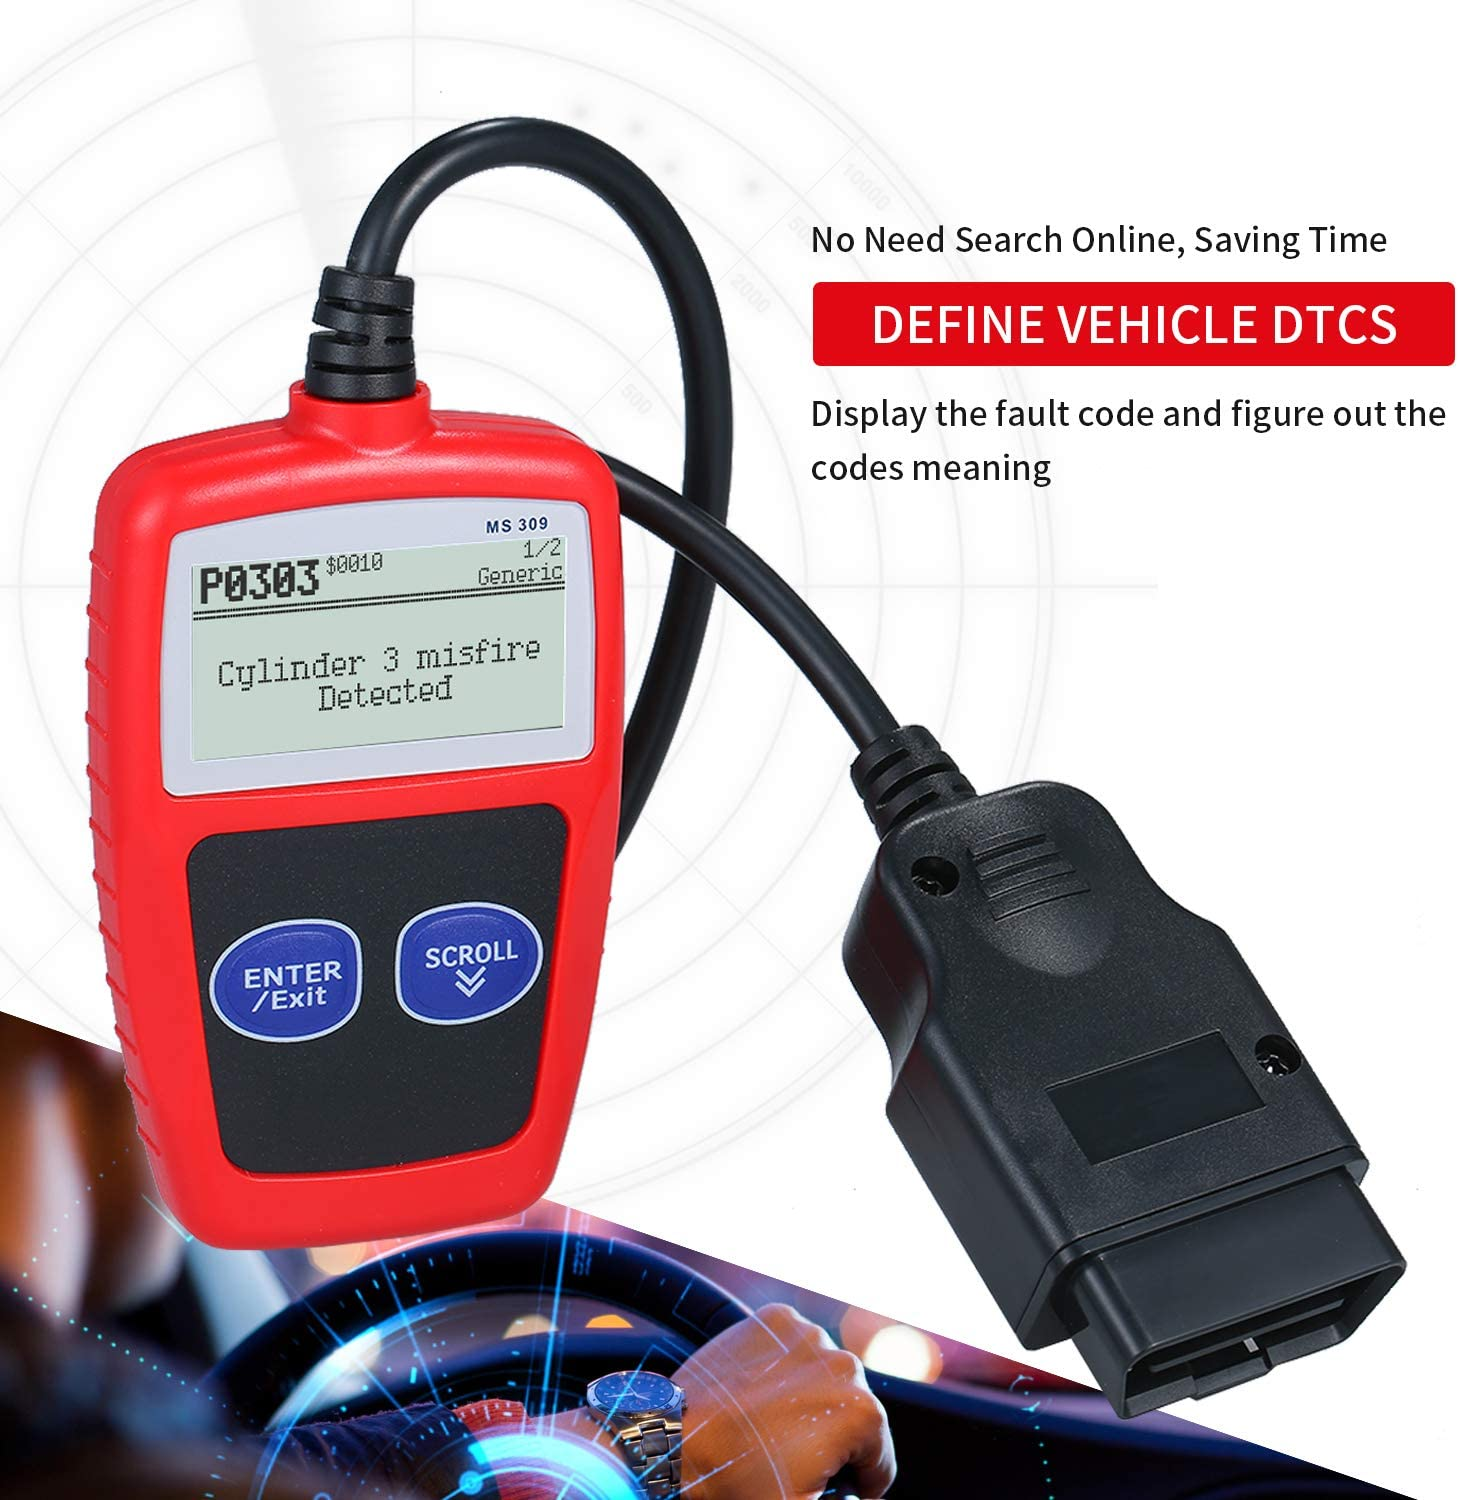 KK moon MS309 Universal O-B-D2 Scanner Automotive Engine Fault Reader CAN Diagnostic Scan Tool Work for US Asian European Cars